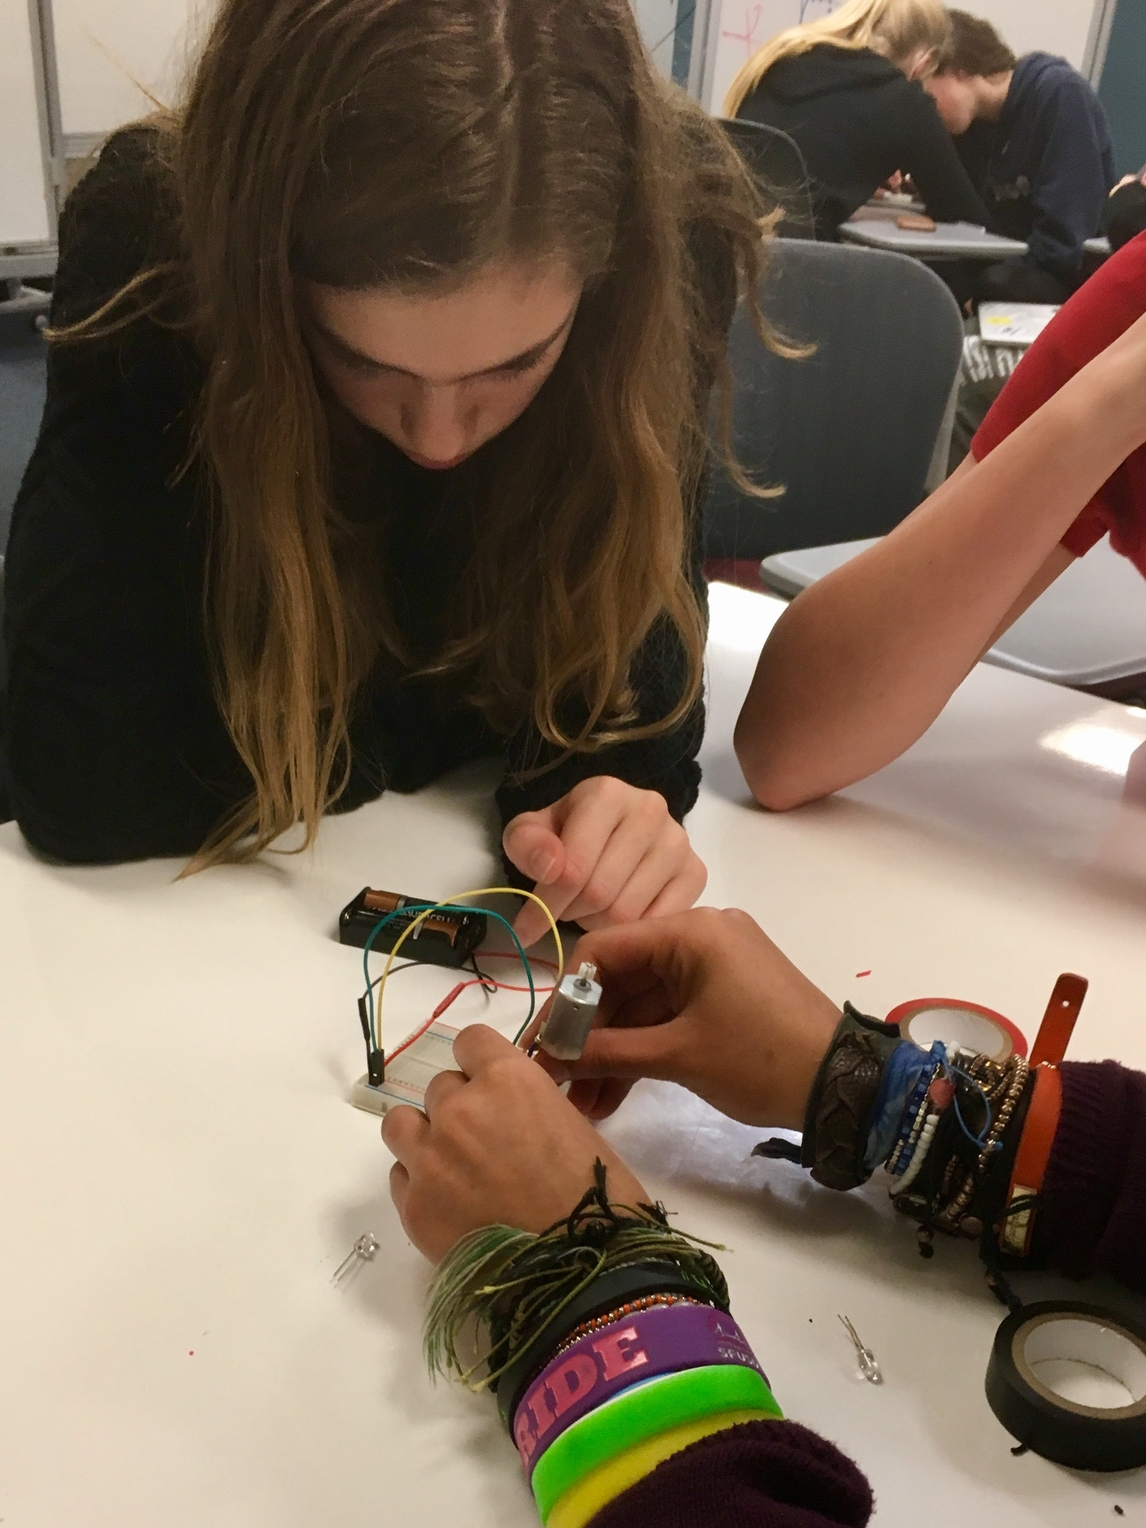 Robotics team member Zoe Hinks works on an in-class activity during the freshman robotics elective class. Hinks will participate in FIRST's Robotics Competition along with three other students.